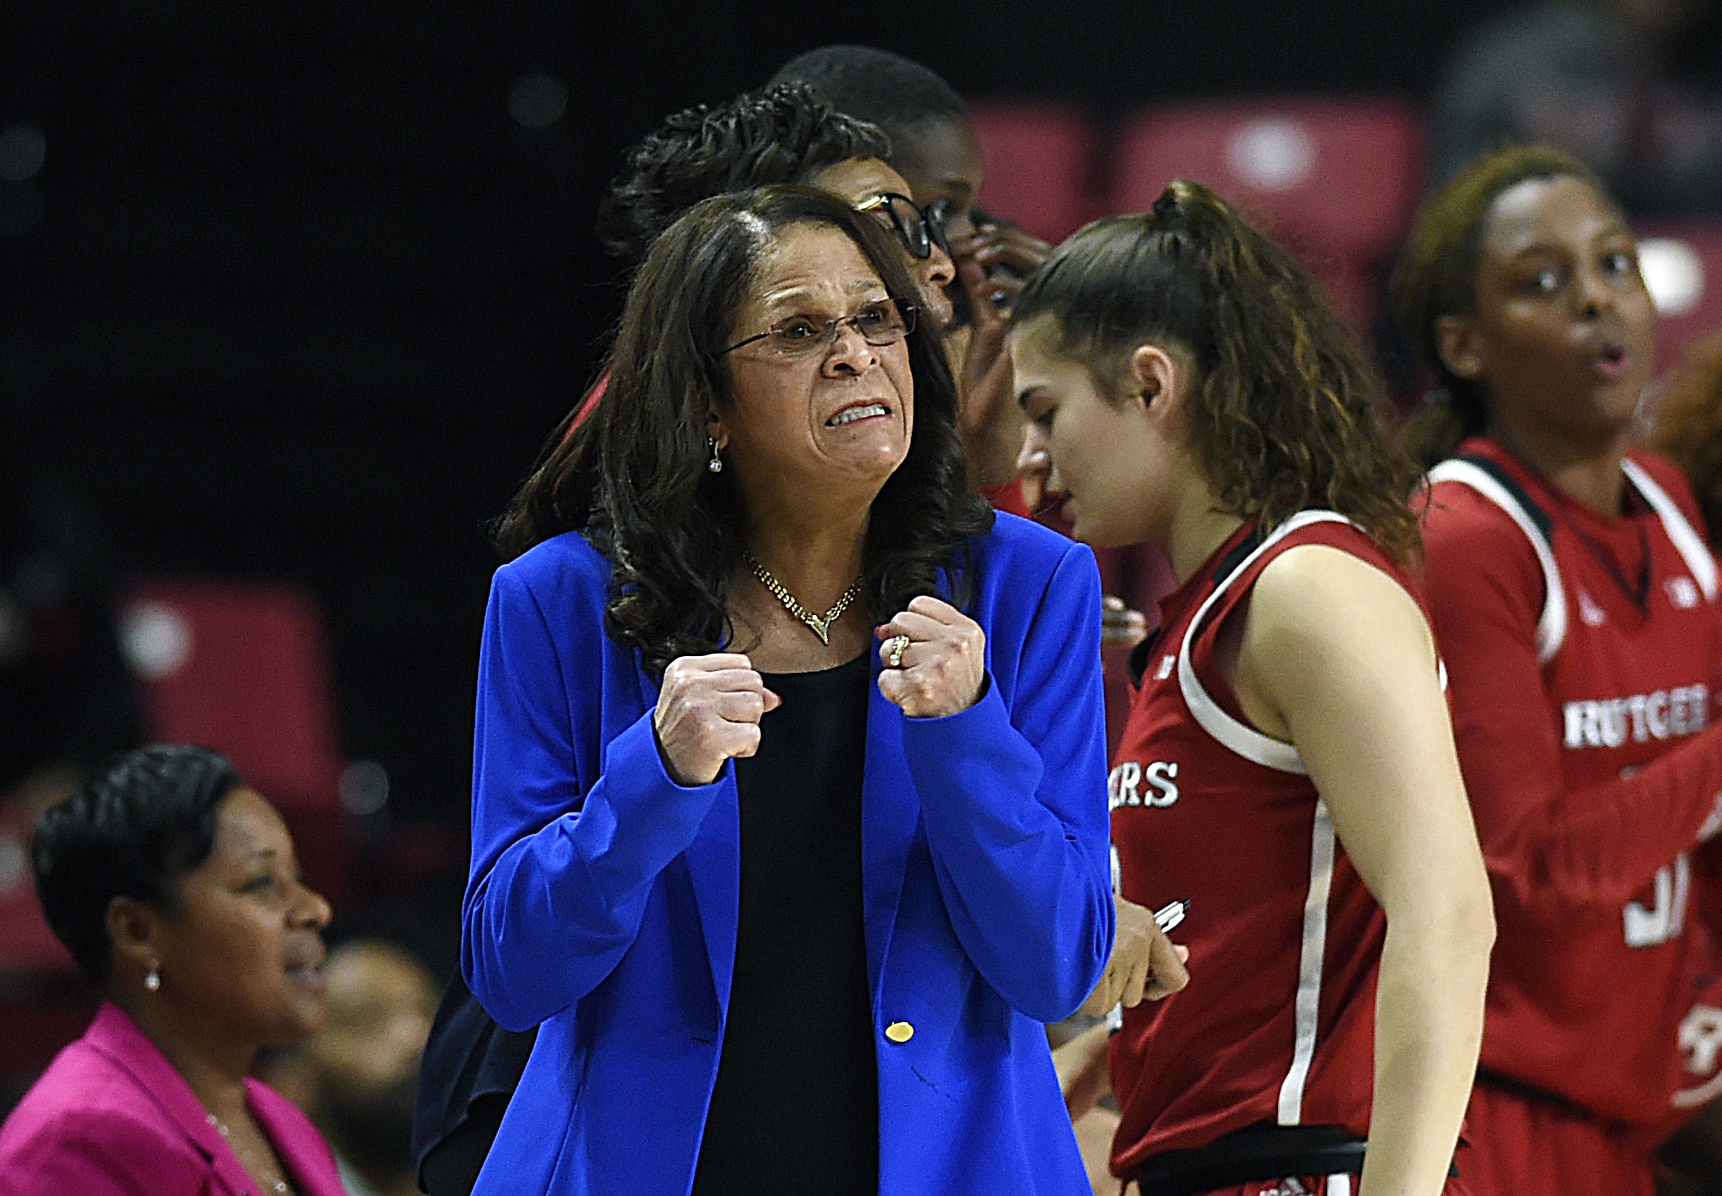 Hall of Fame coaches Stringer and Auriemma miss games